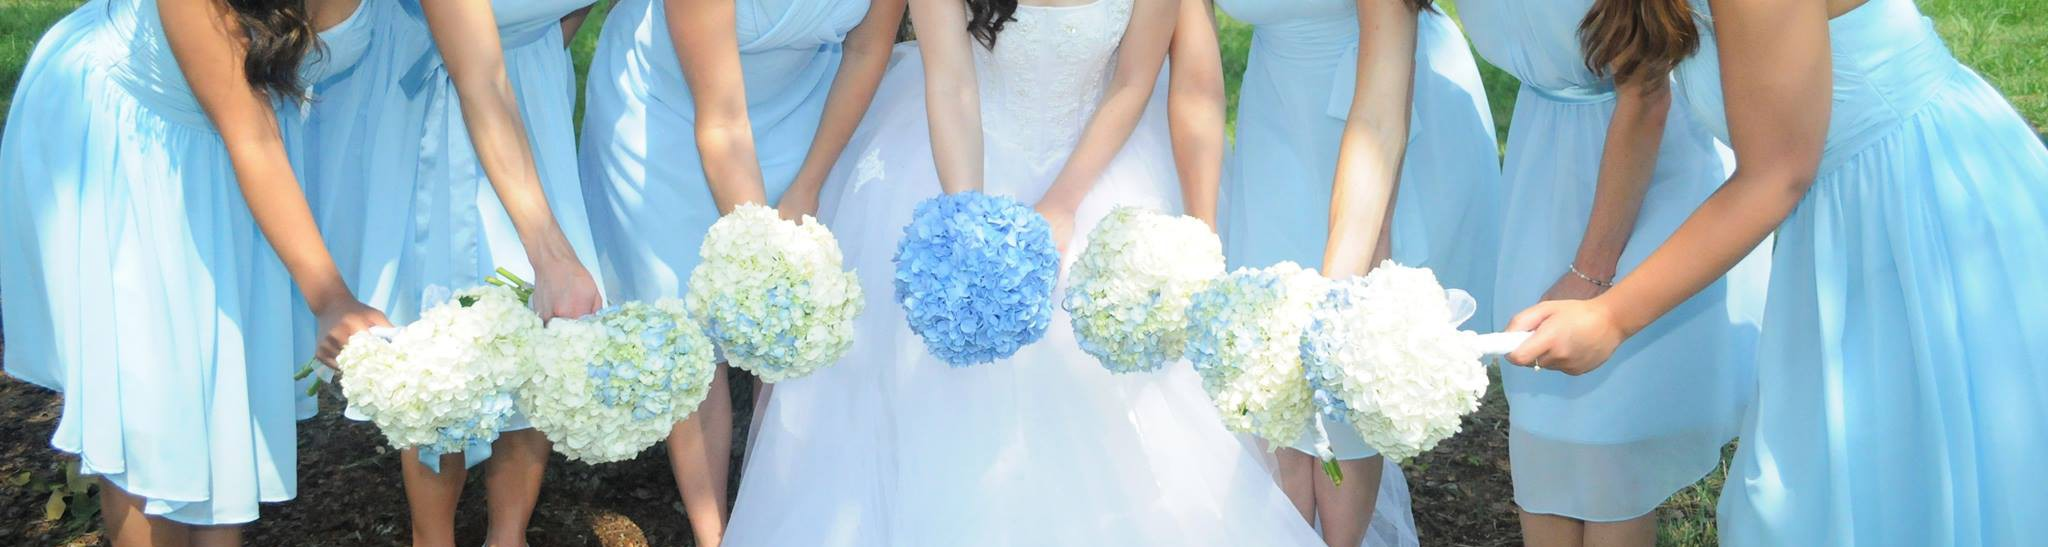 Carolina blue wedding bridesmaids